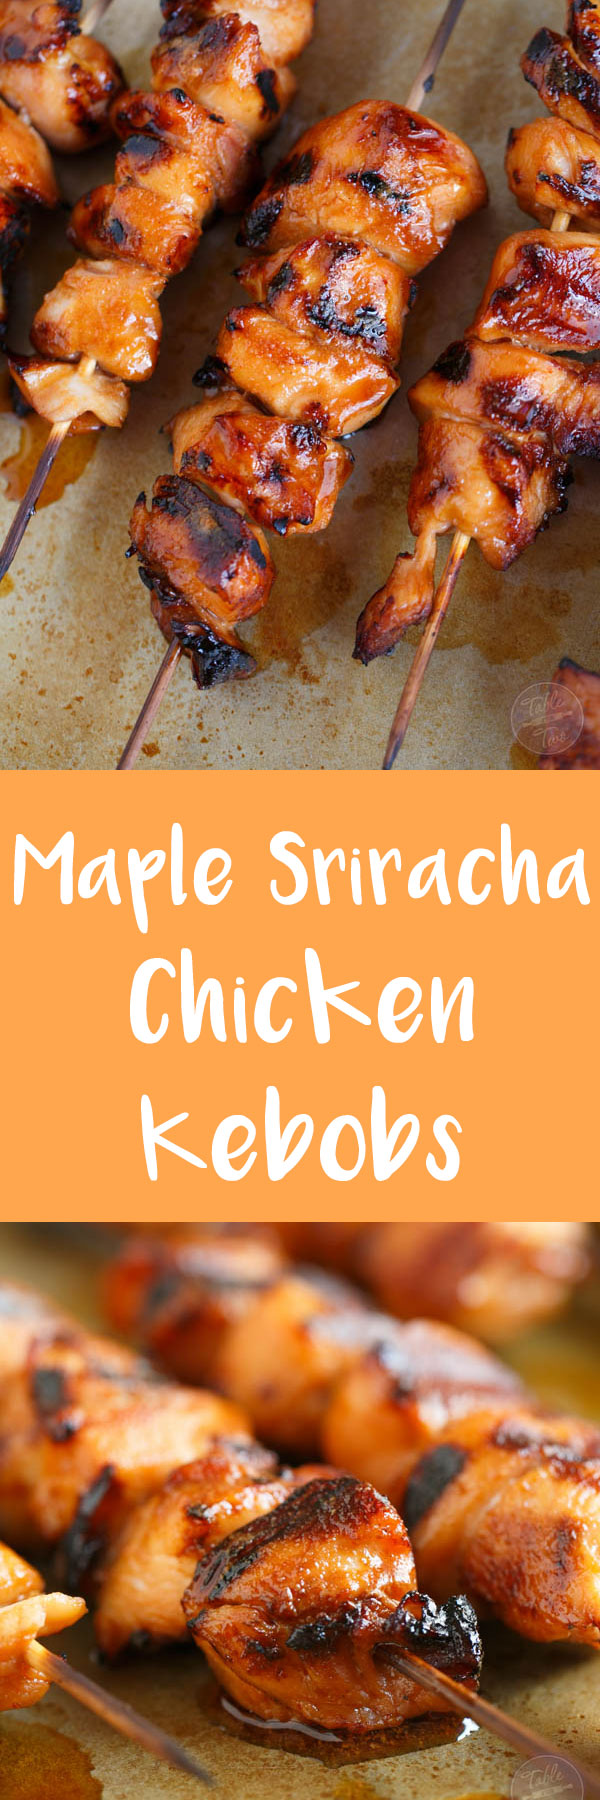 Grilled maple sriracha chicken kebobs are the best combination of salty, spicy, and sweet! With the easiest marinade you'll ever make, go ahead and throw some on the grill before summer is over!